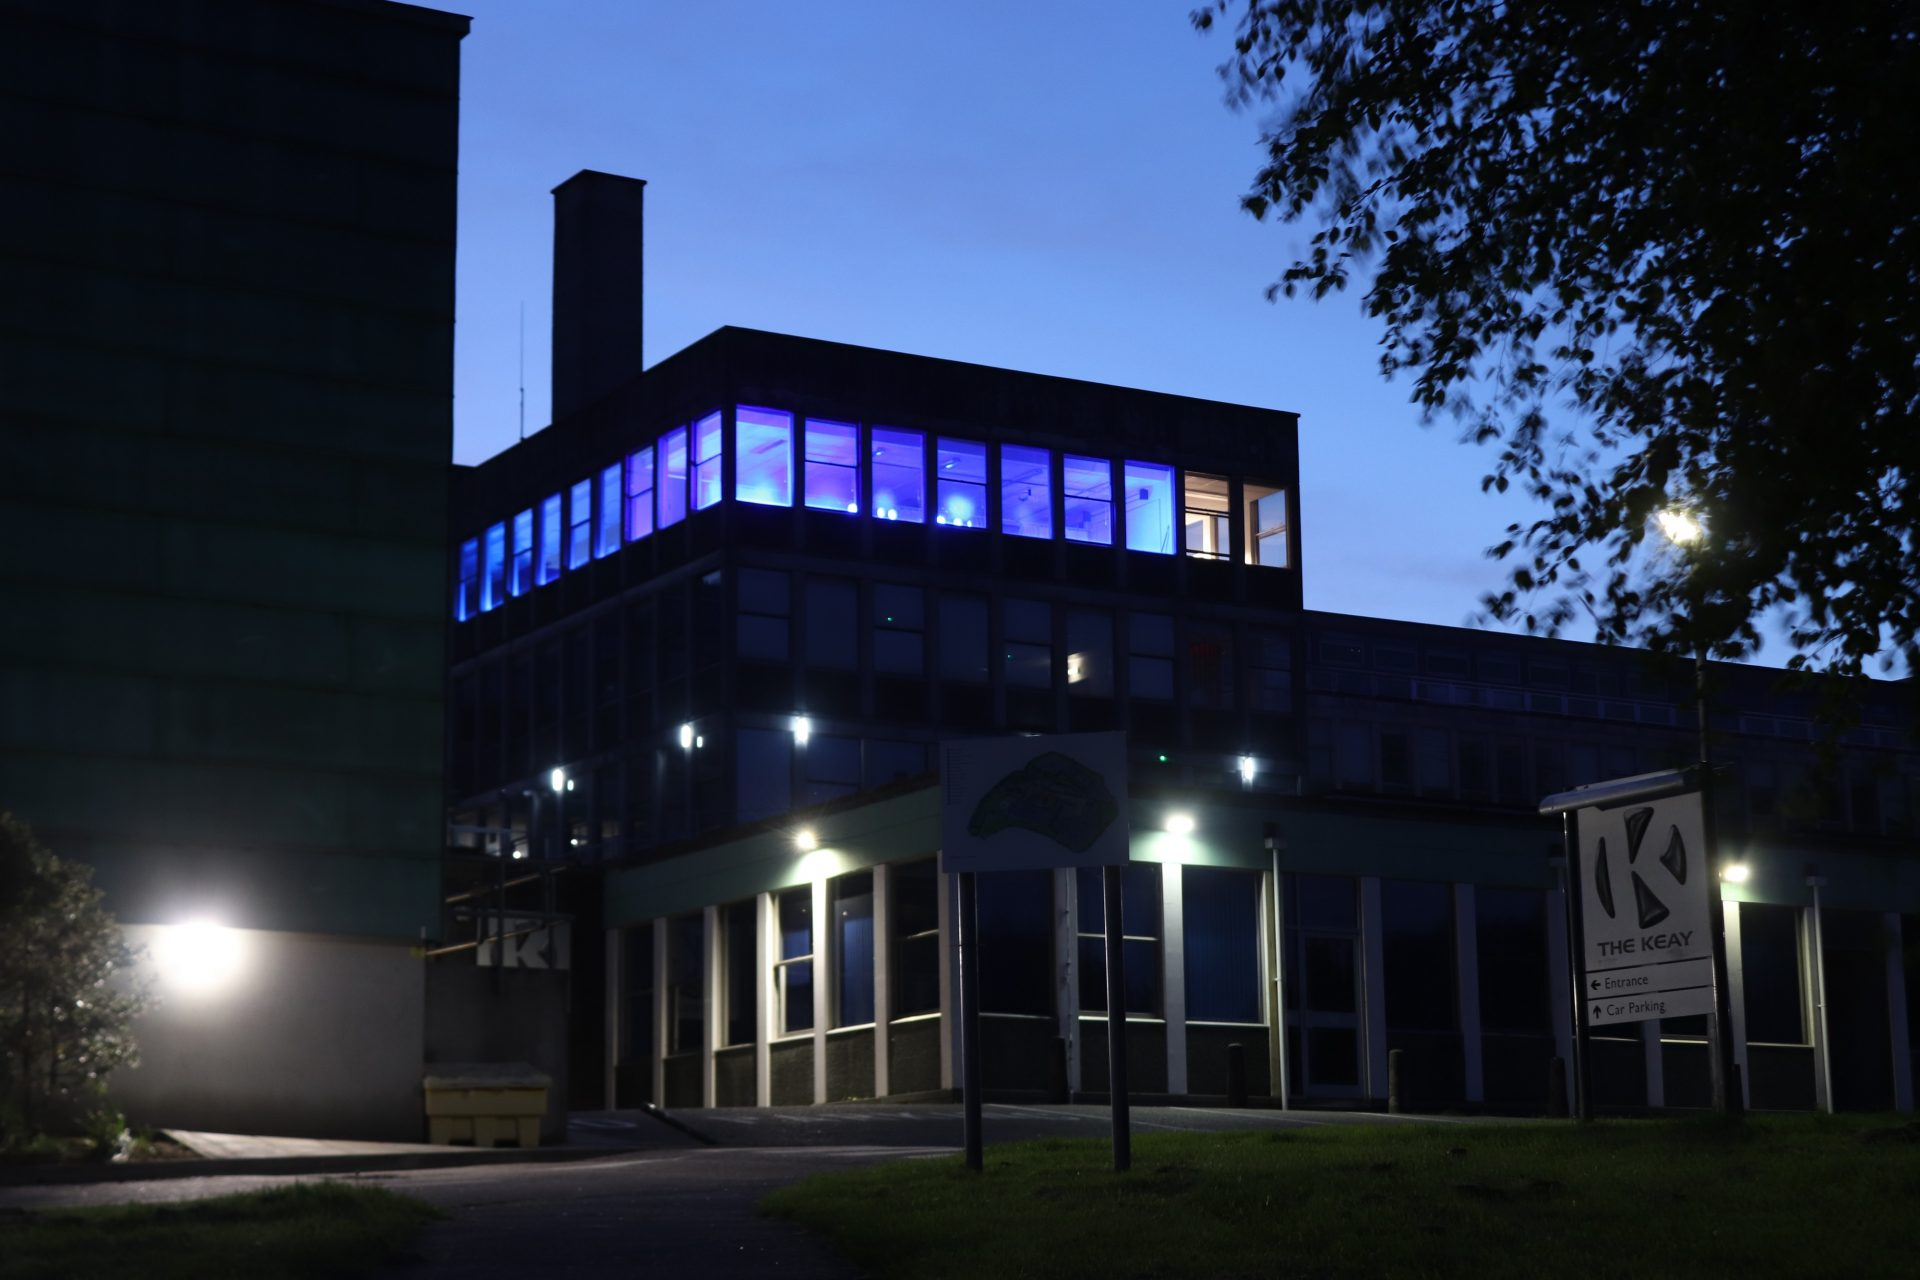 Local college lights up in lockdown